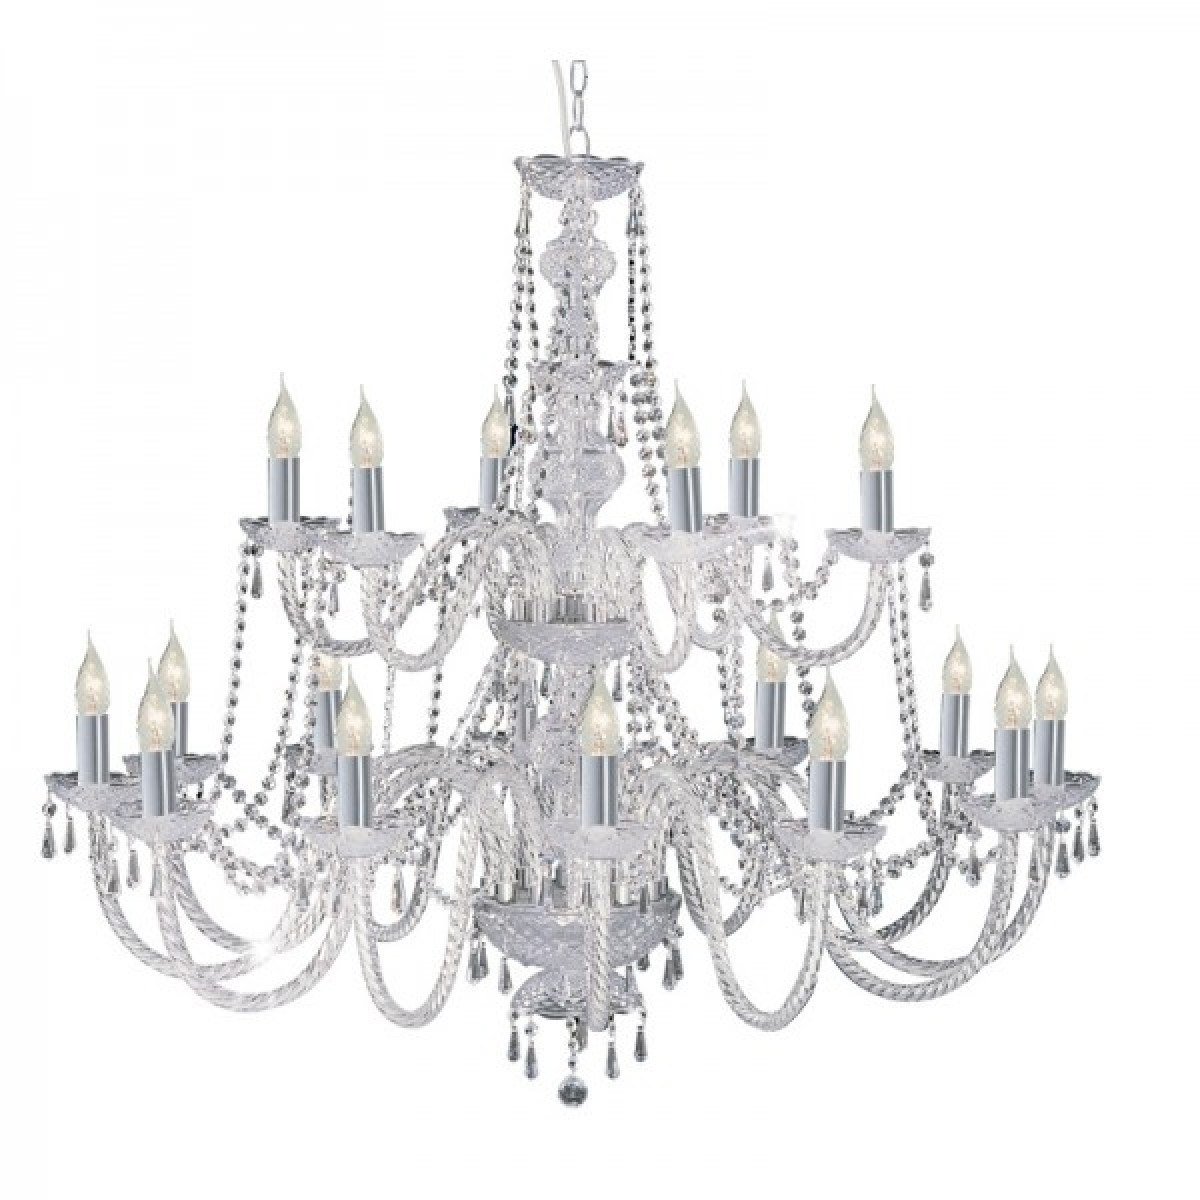 Chandelier Chrome And Crystal Chandeliers 24 Of 25 Photos